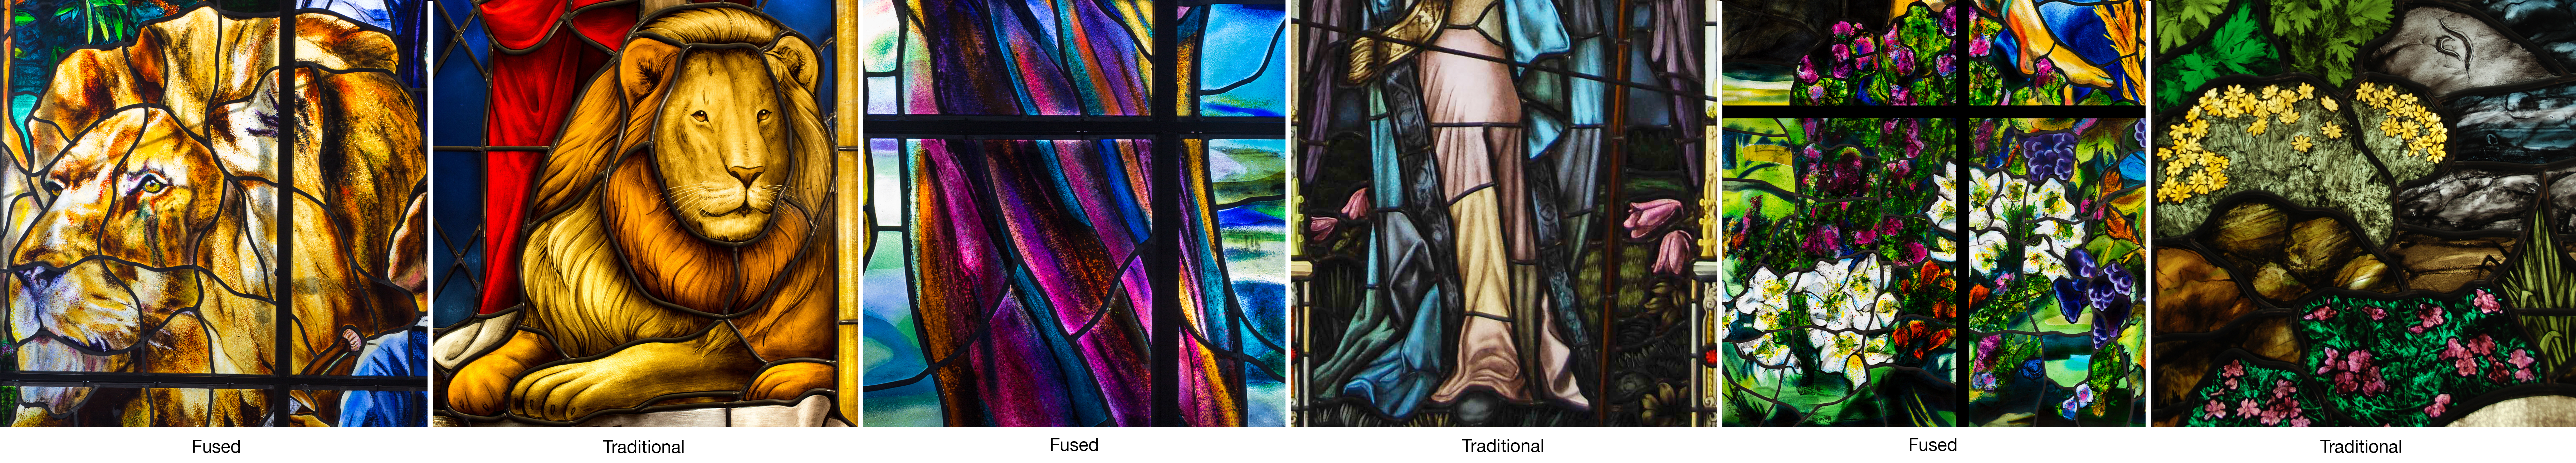 Fused Glass Can Be Successfully Leaded Or Span Up To A Continuous Panel Of 8 Feet By 4 We Work Directly With Our Clients Understand Specific Needs